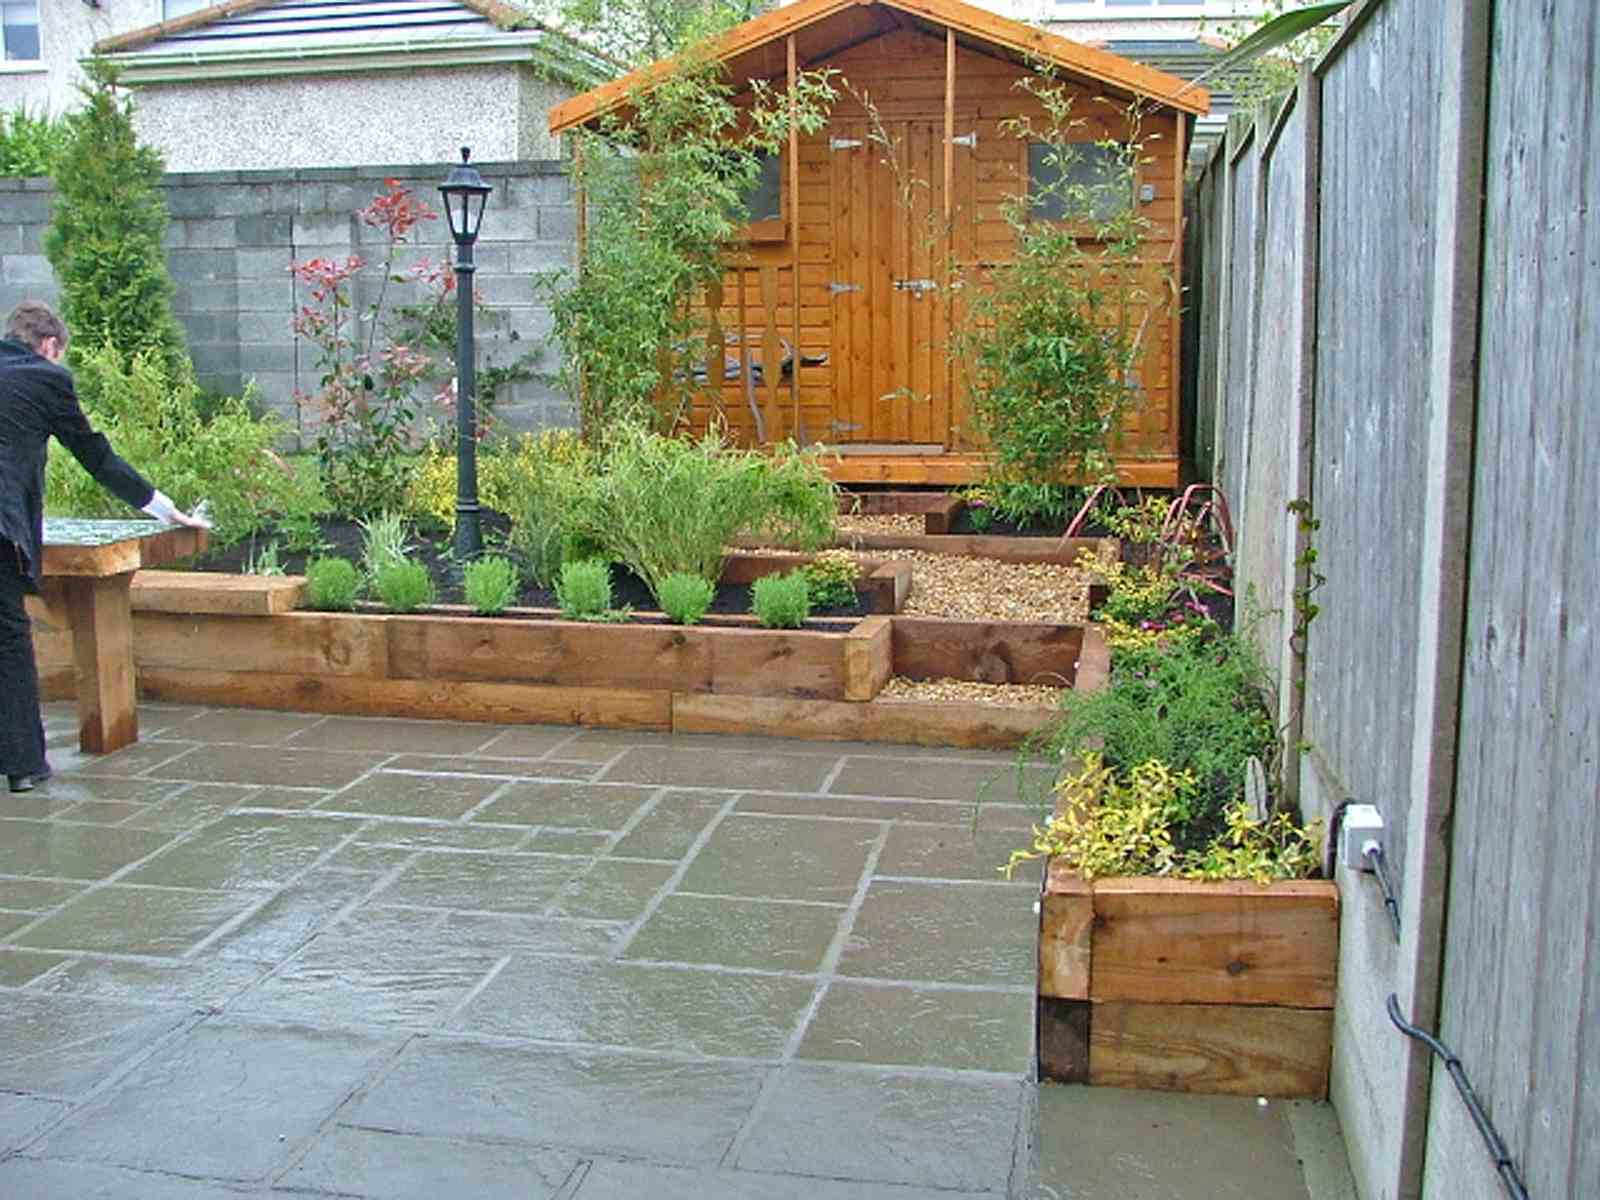 15 Raised Bed Garden Design Ideas on raised garden bed cold frame, raised garden bed tree, raised garden bed garden, raised garden bed bench, raised garden bed table,